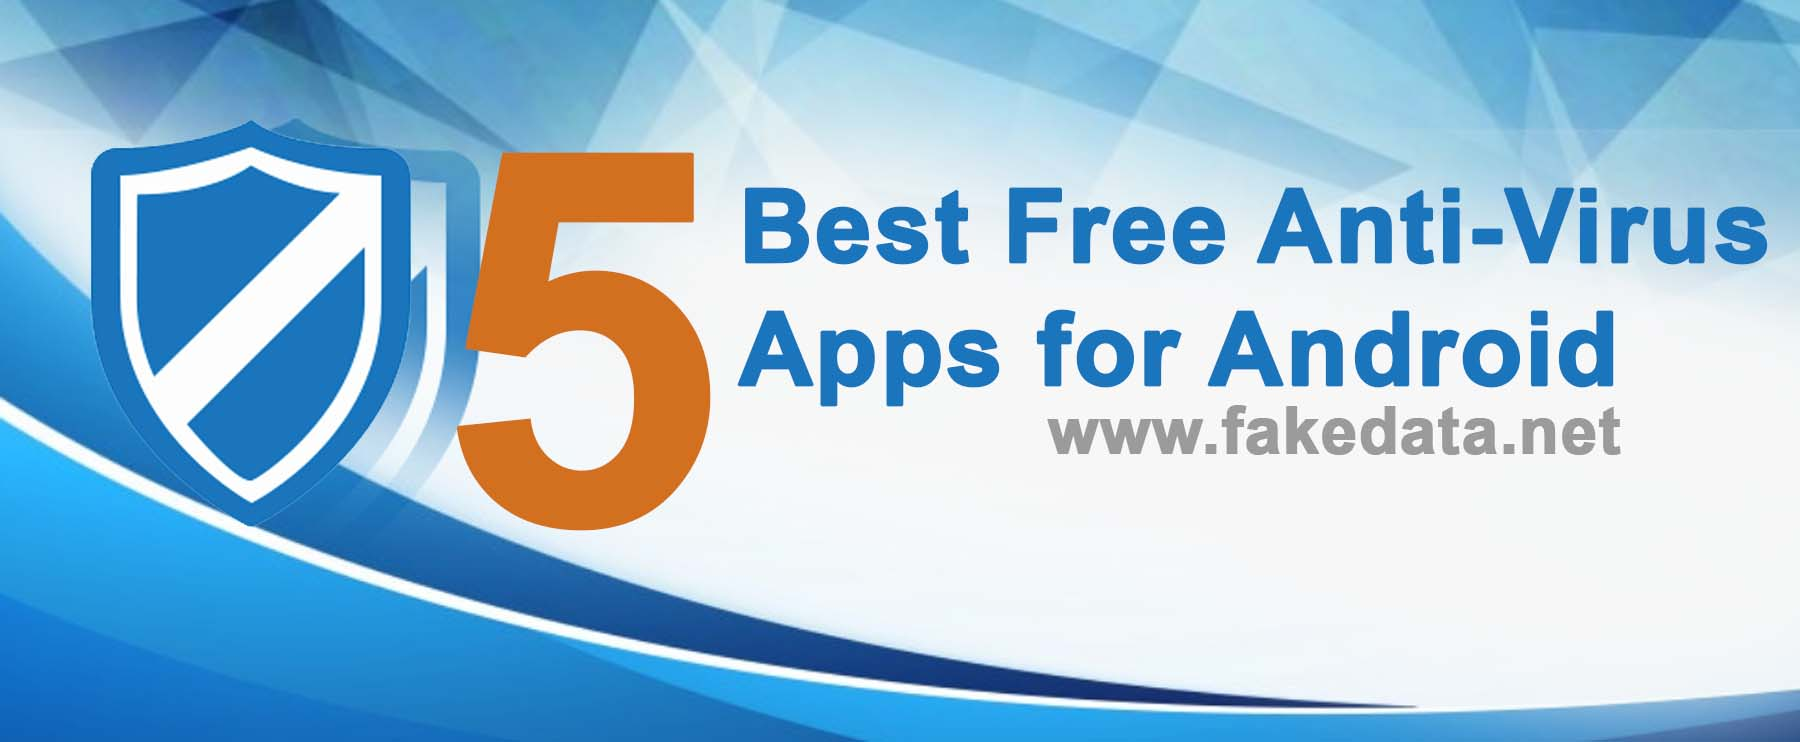 TOP 5 Free Anti-Virus App for Android